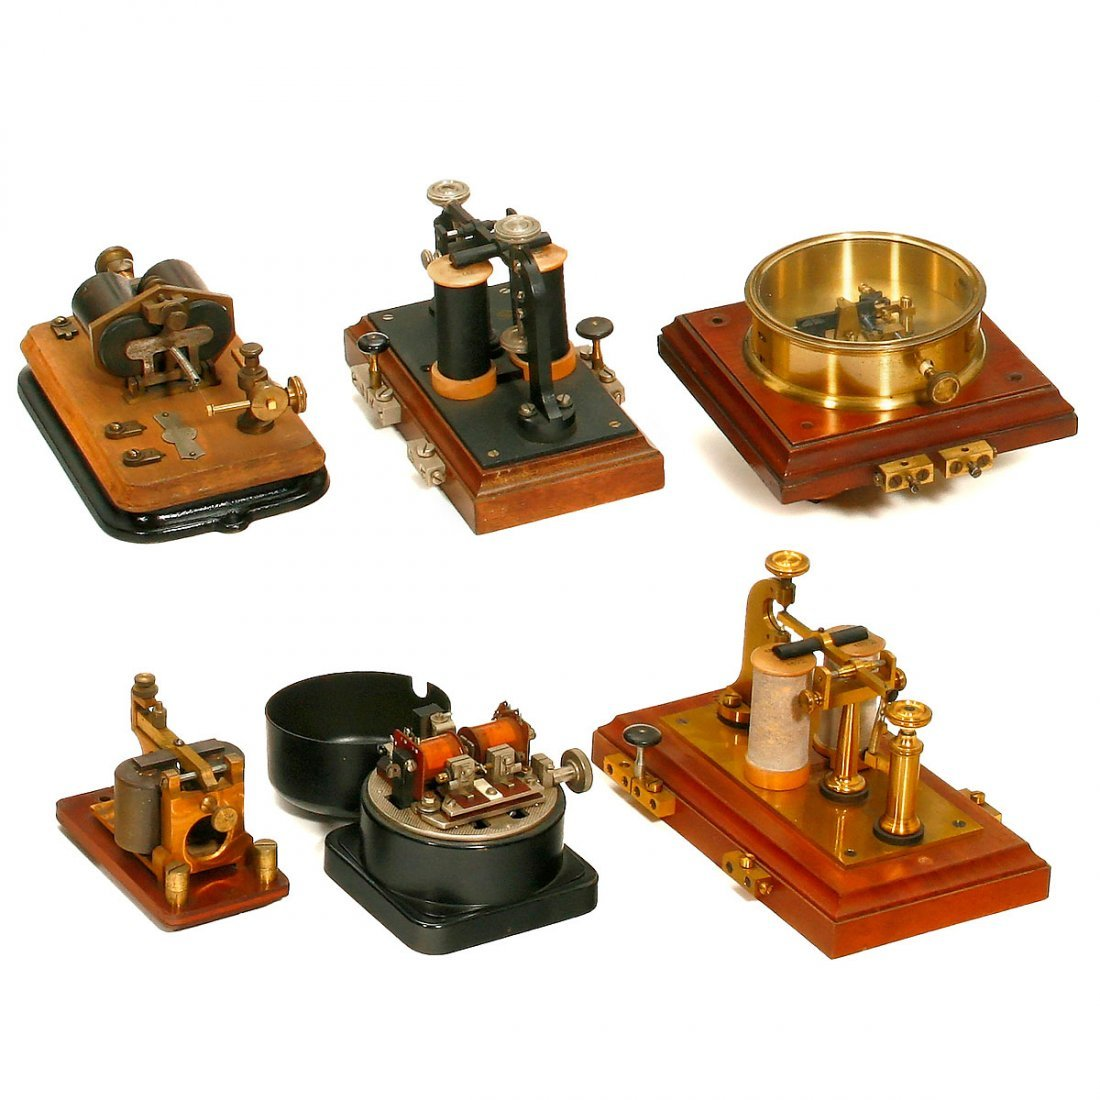 Lot of Telegraph Accessories, 1880 onwards